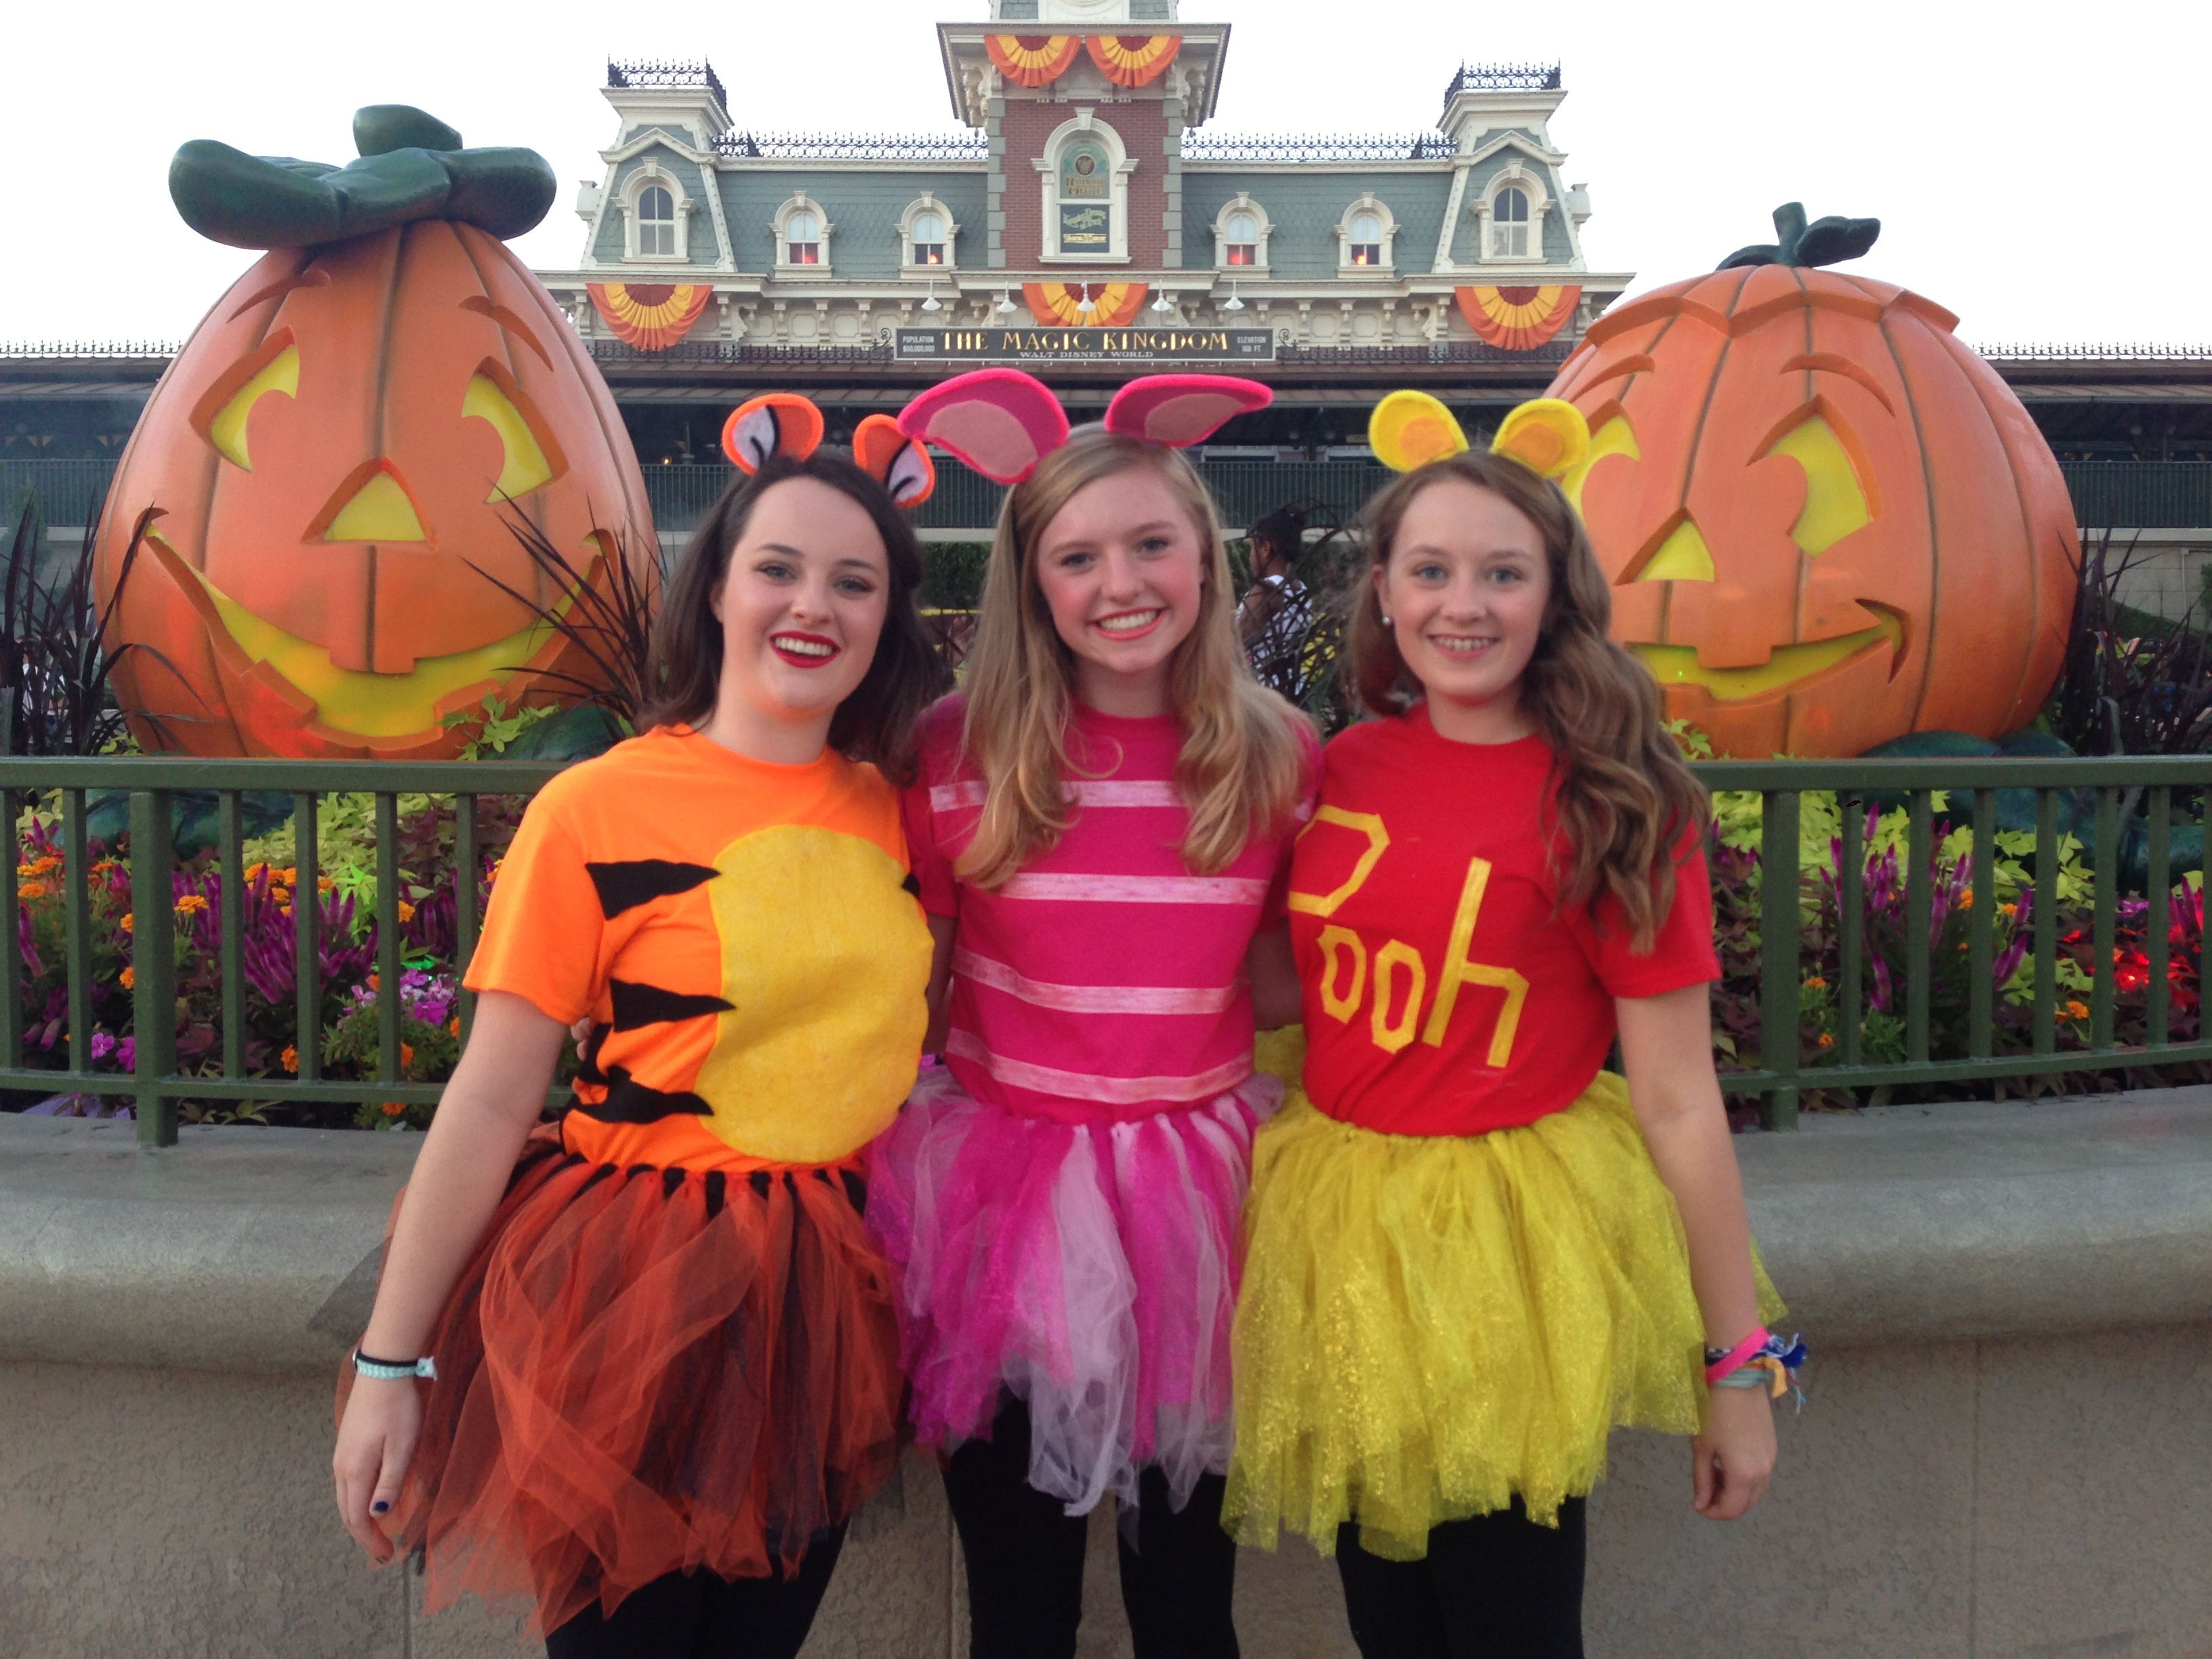 Best ideas about Winnie The Pooh Costume DIY . Save or Pin Pooh Piglet and Tigger Costumes Pinterest Now.